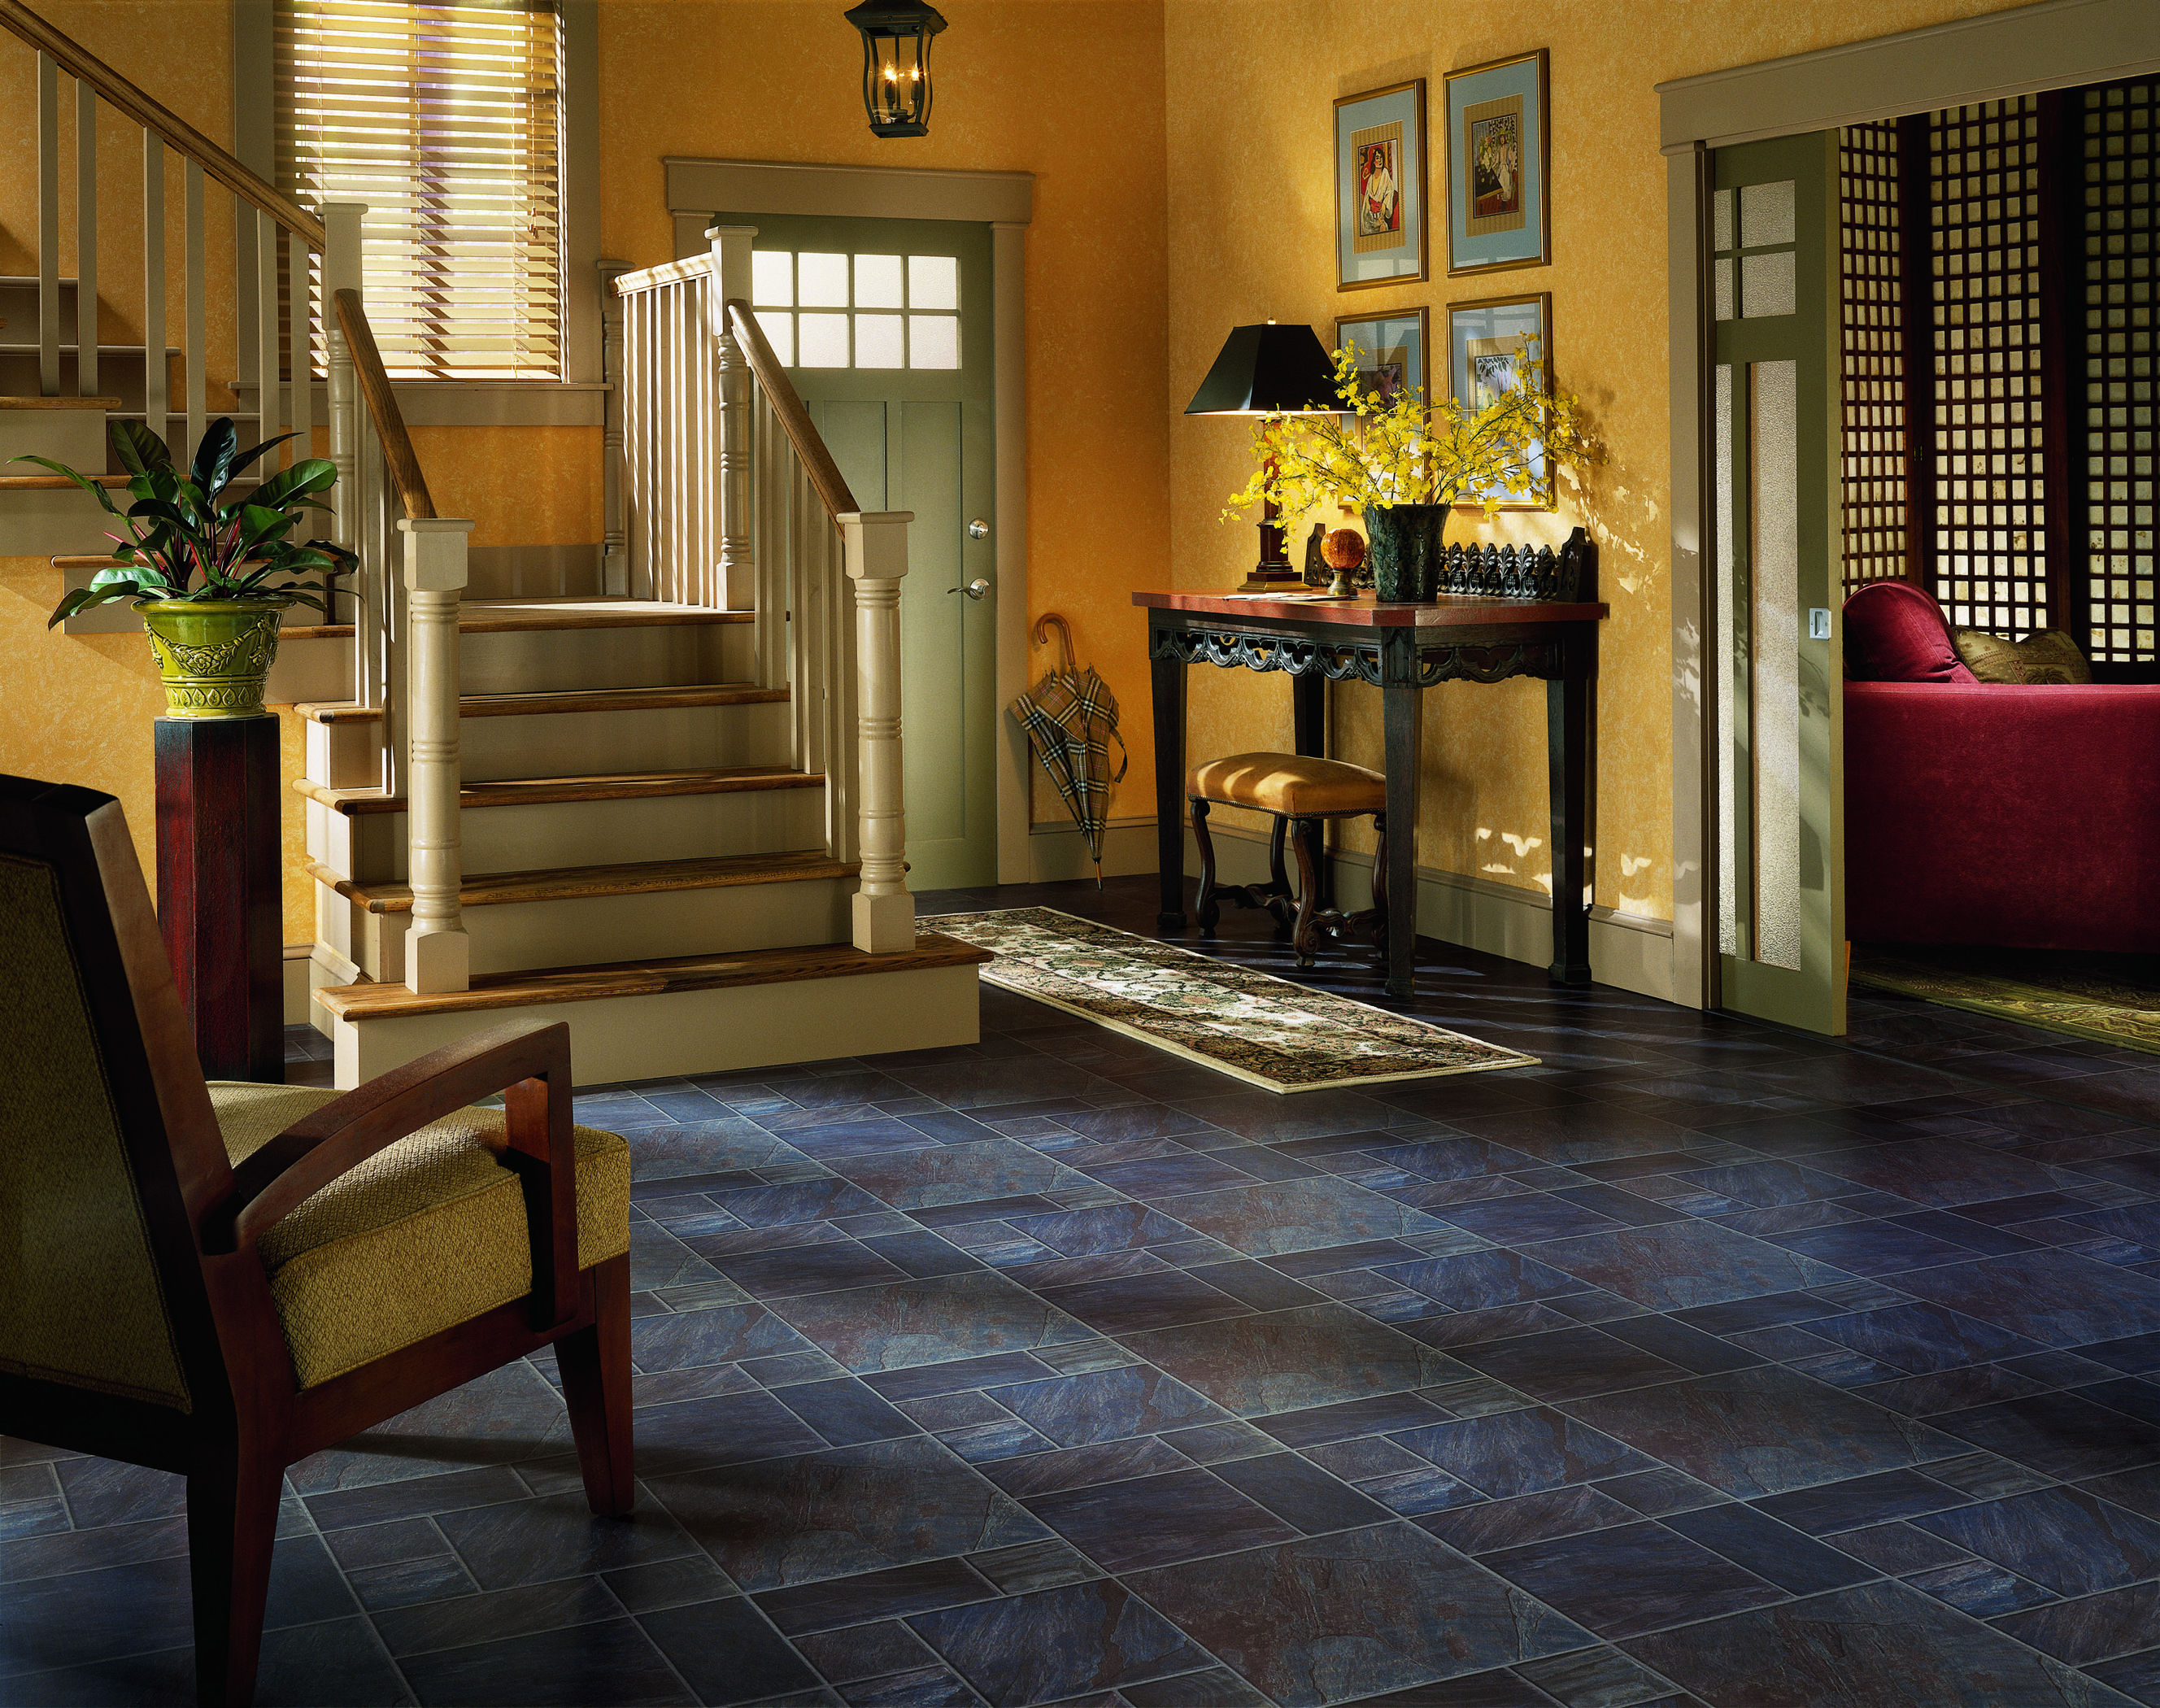 Staircase Ideas For Your Hallway That Will Really Make An: Country, Cozy Entryway. Yellow Walls And Dark Floors Can